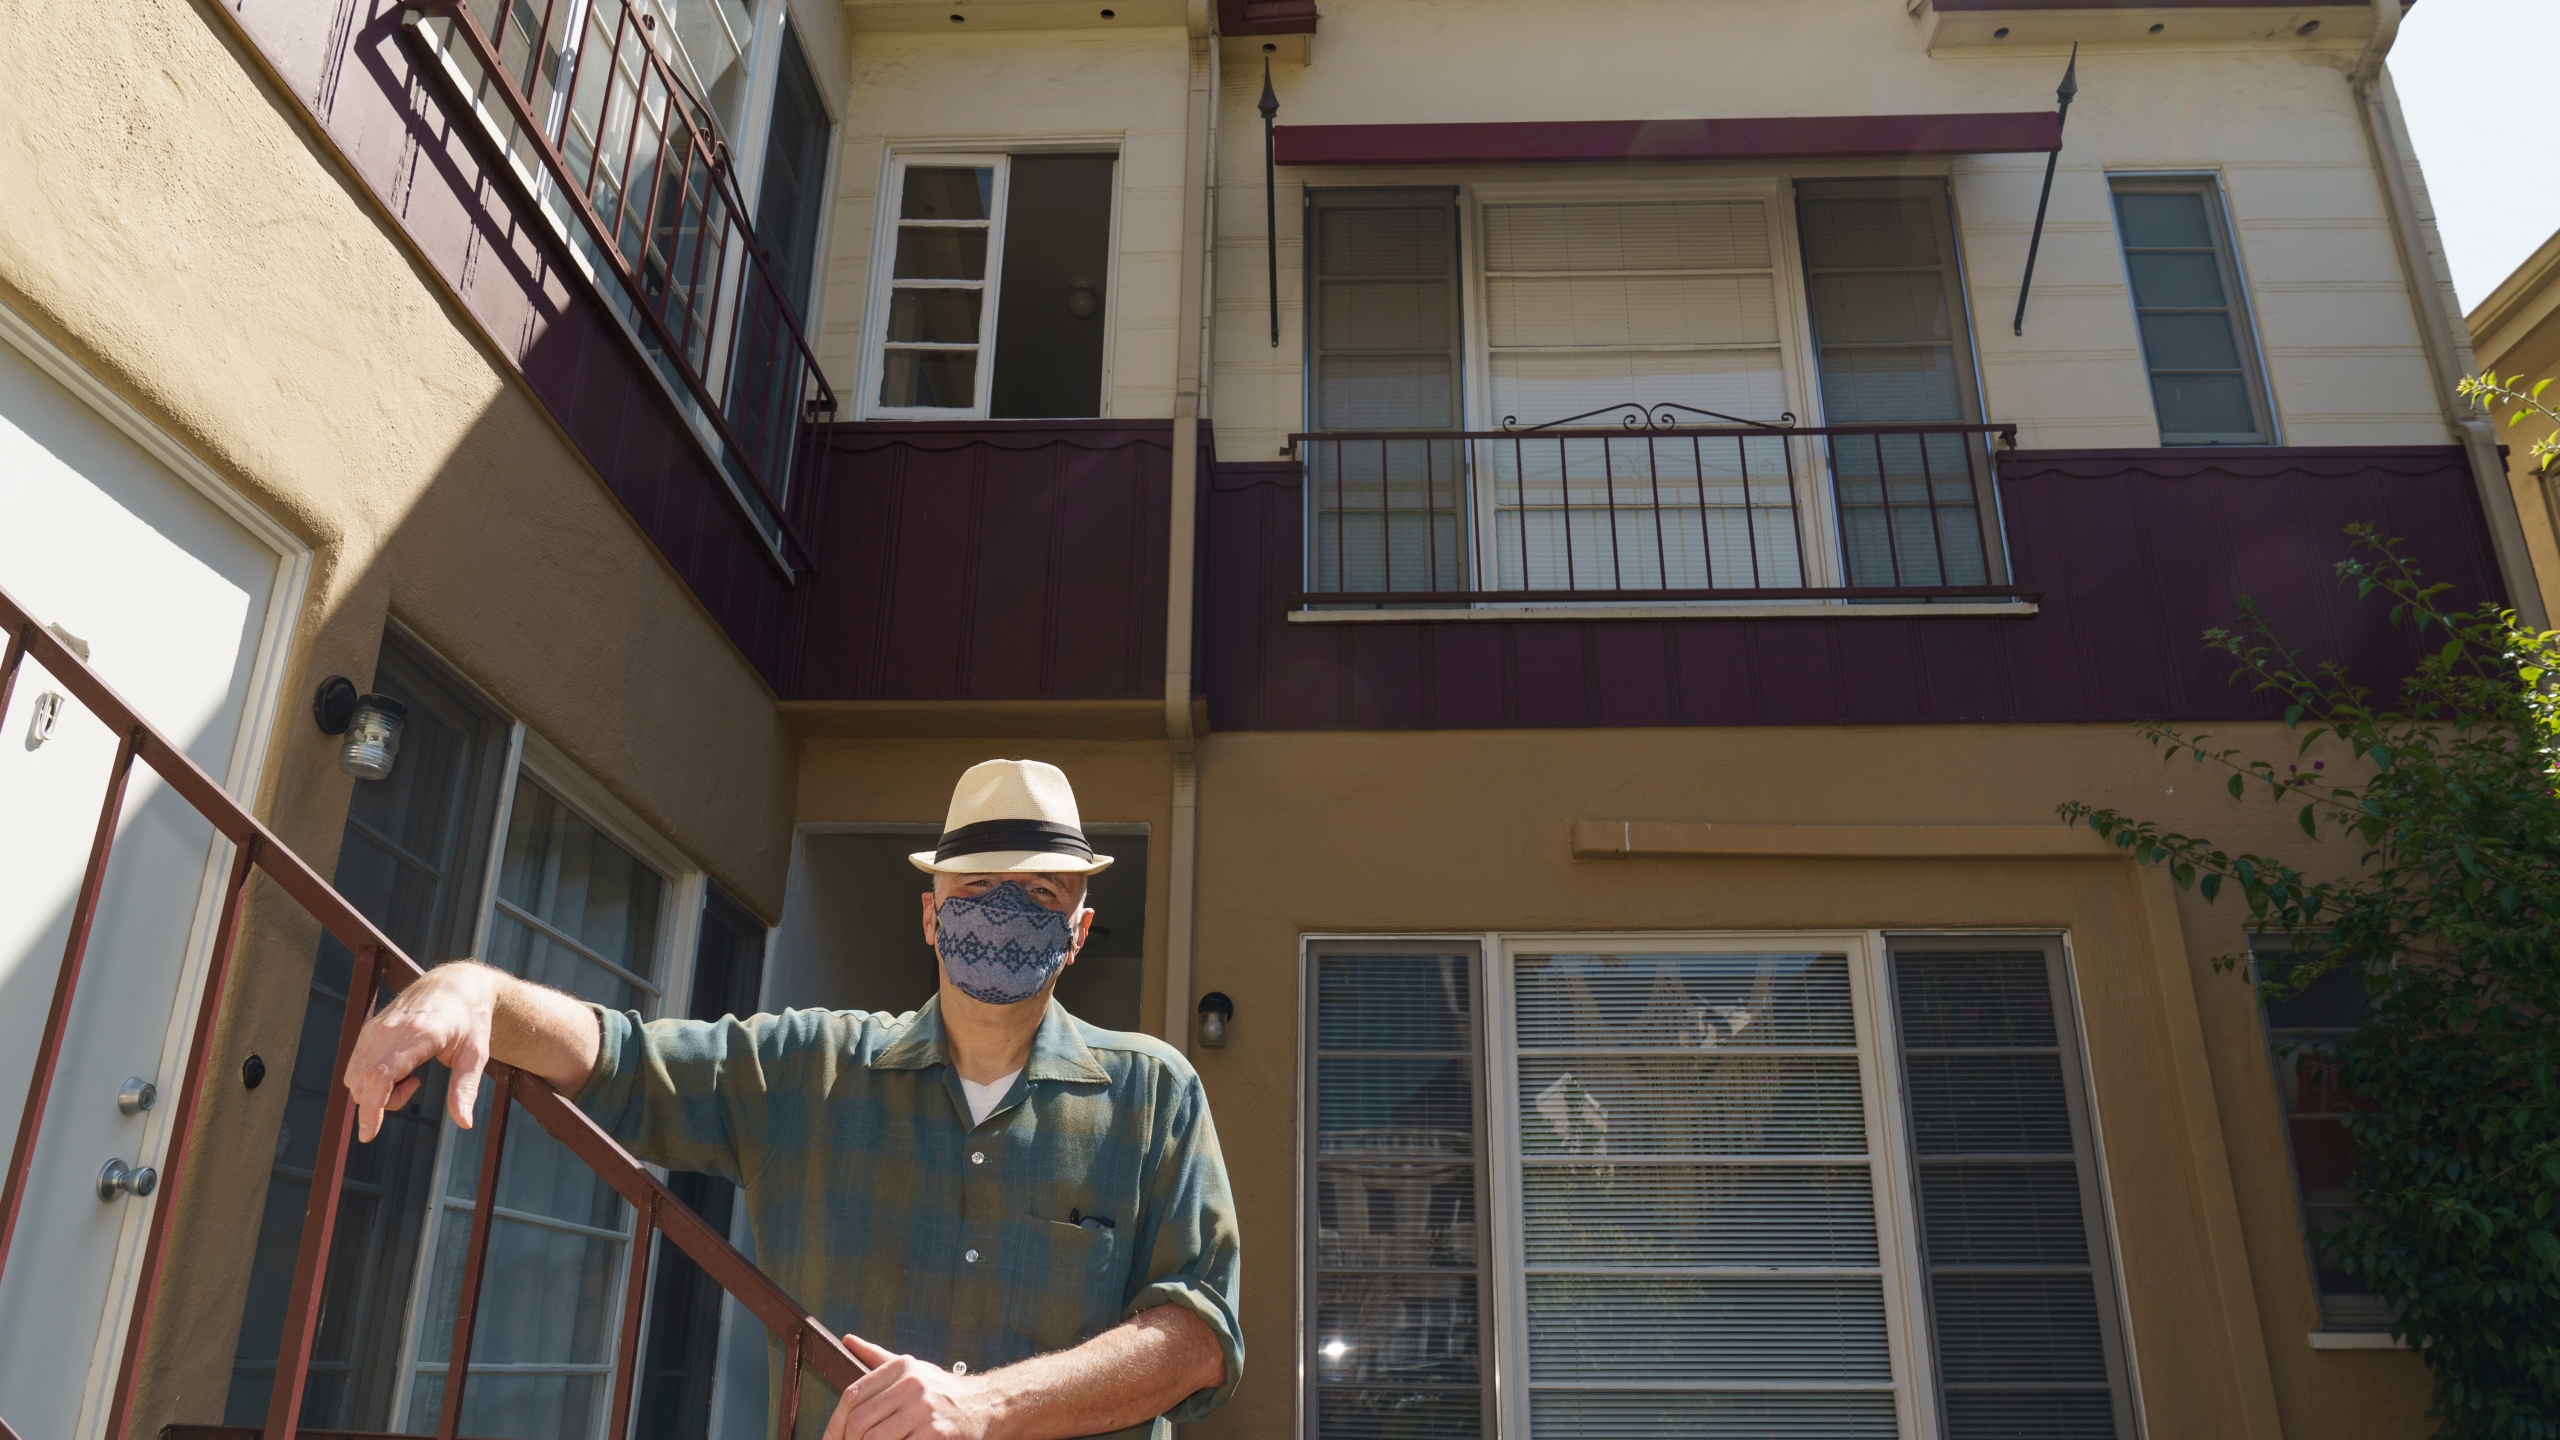 Nathan Long, a video game writer, poses for a picture outside his rental apartment courtyard in Glendale on April 8, 2021. He and his wife, Lili, have been unsuccessful so far in their search for a home in Los Angeles. (AP Photo/Damian Dovarganes)